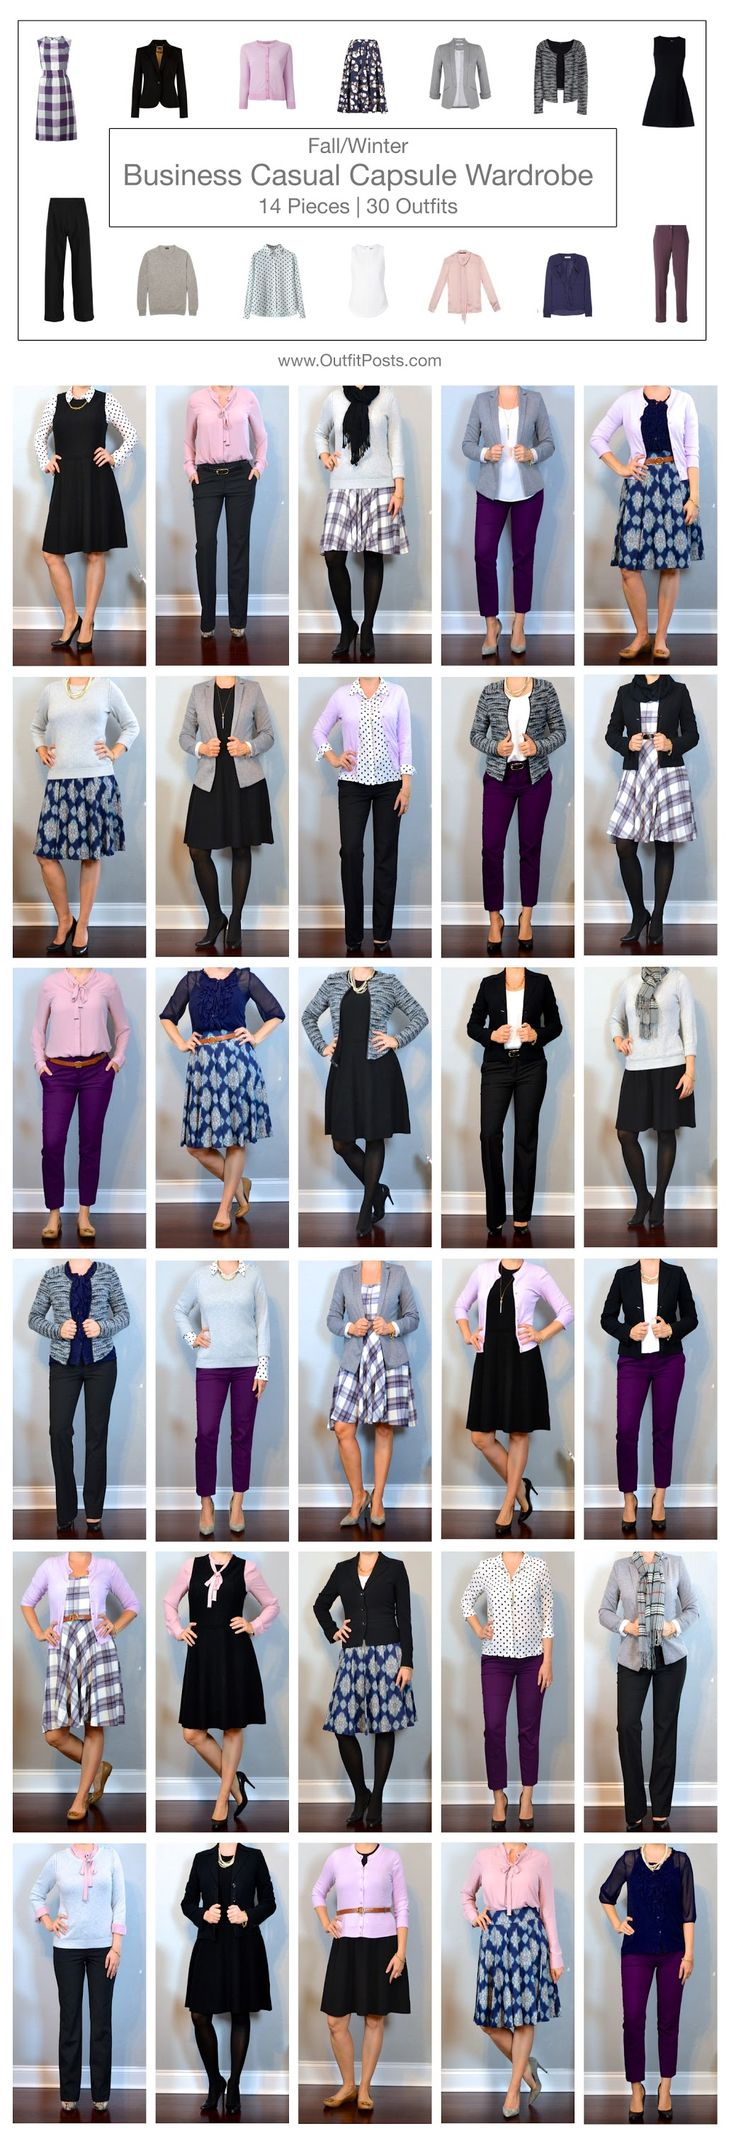 outfit post: fall/winter business casual capsule wardrobe - 14 pieces | 30 outfits